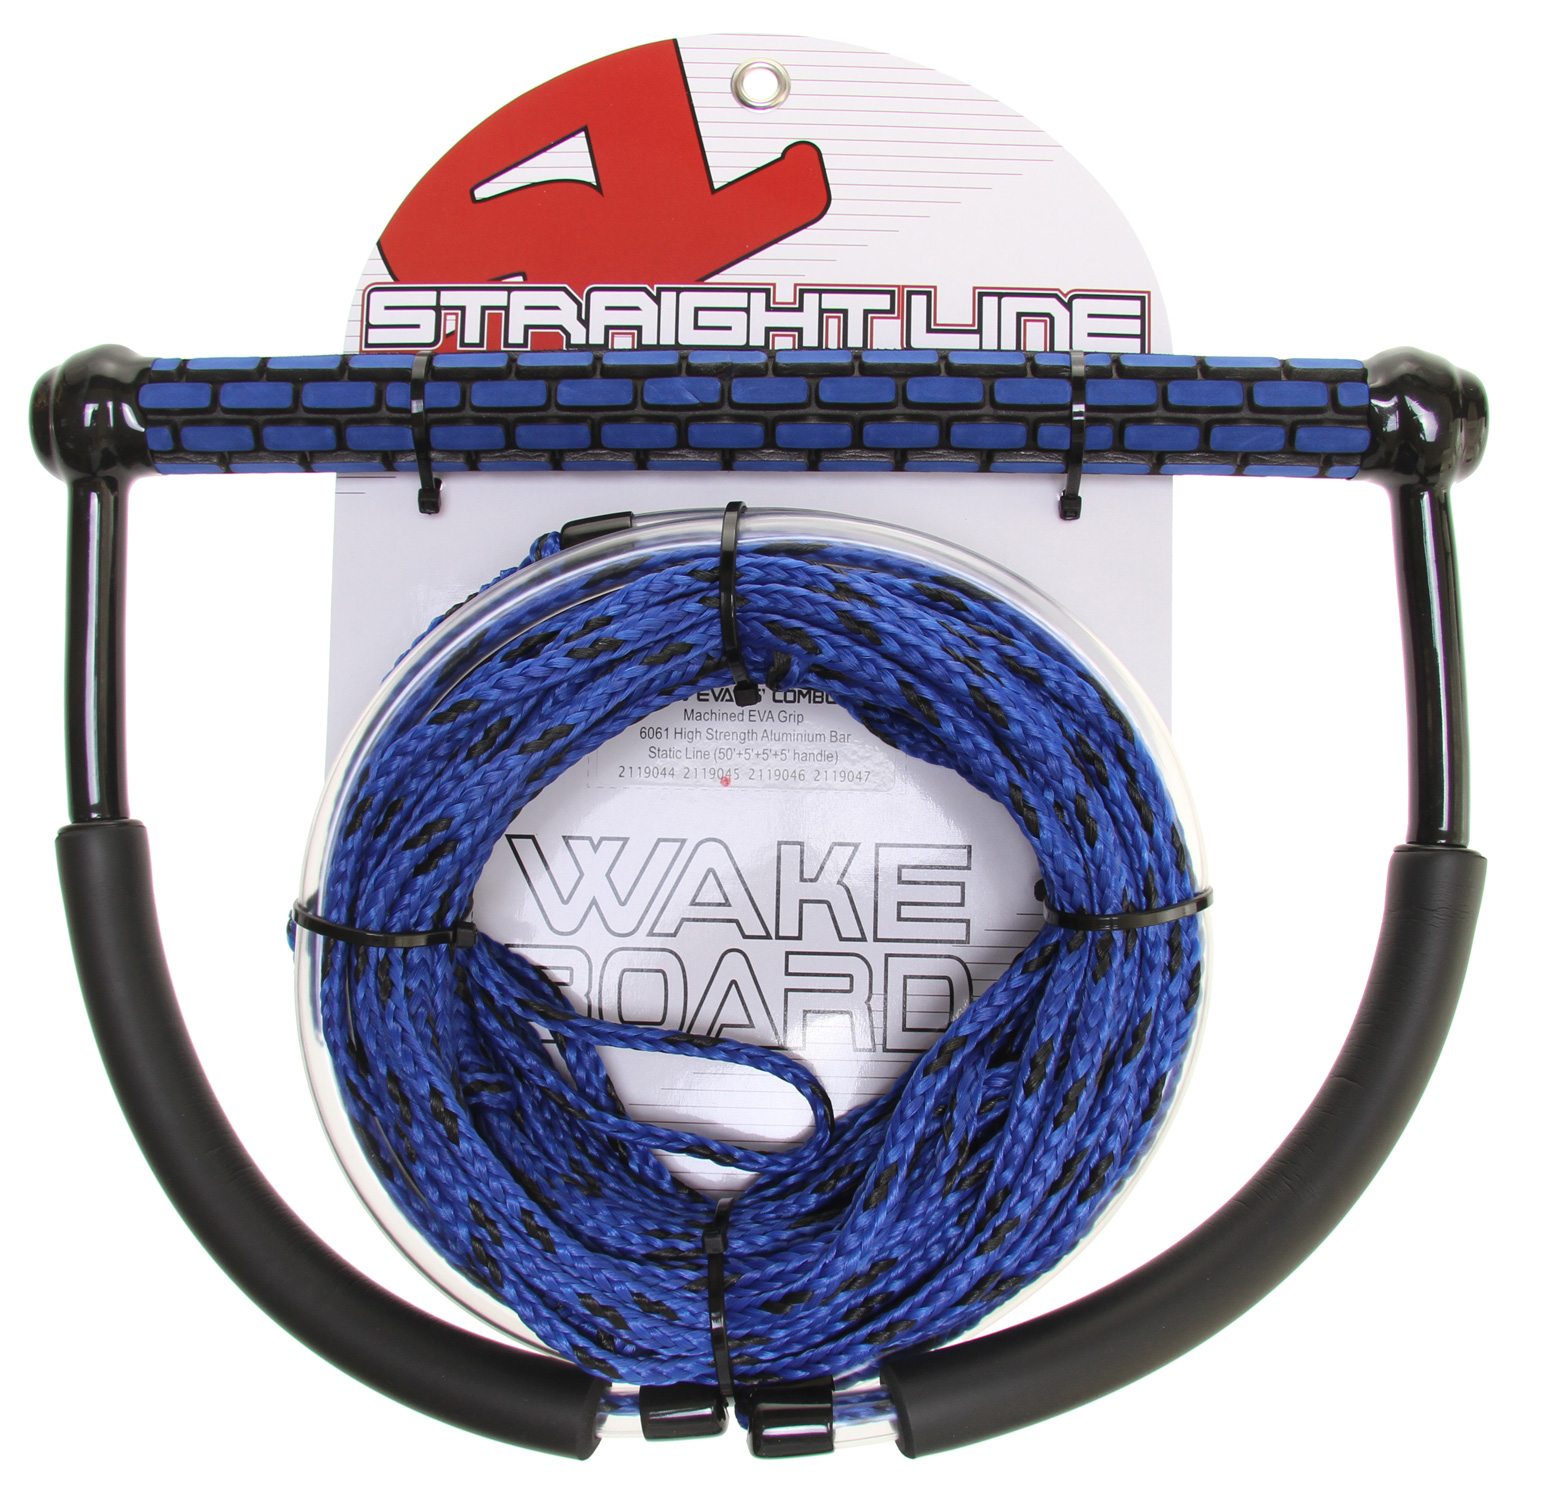 Wake 65'' EVA TR9 W/ STATIC(50''+5''+5''+5'' handle) Straight Line''s Static line is made of a specific blended Polyethylene fiber for the most forgiving wake line, allowing only minimal amounts of stretch. Double braided handle construction along with dual neoprene floats make sure this combo is durable and highly visible on the water. These combos are great for any up and coming athlete, whether it is Wakeboarding, Wakeskating or Kneeboarding. - $37.95